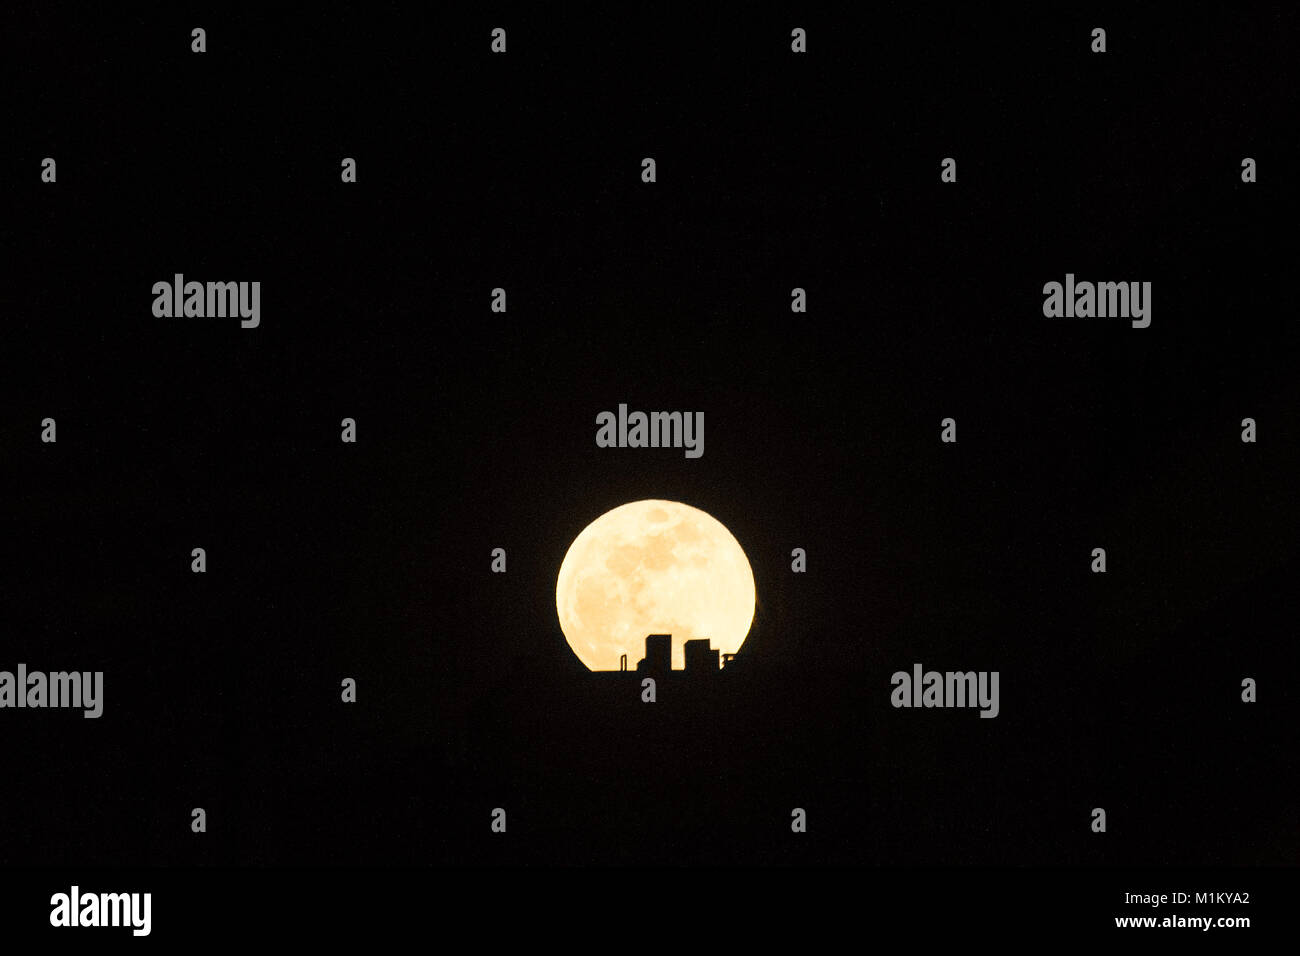 Madrid, Spain. Jan 31st, 2018. Super blue moon rising over a roof in Madrid, Spain. Credit: Marcos del Mazo/Alamy - Stock Image